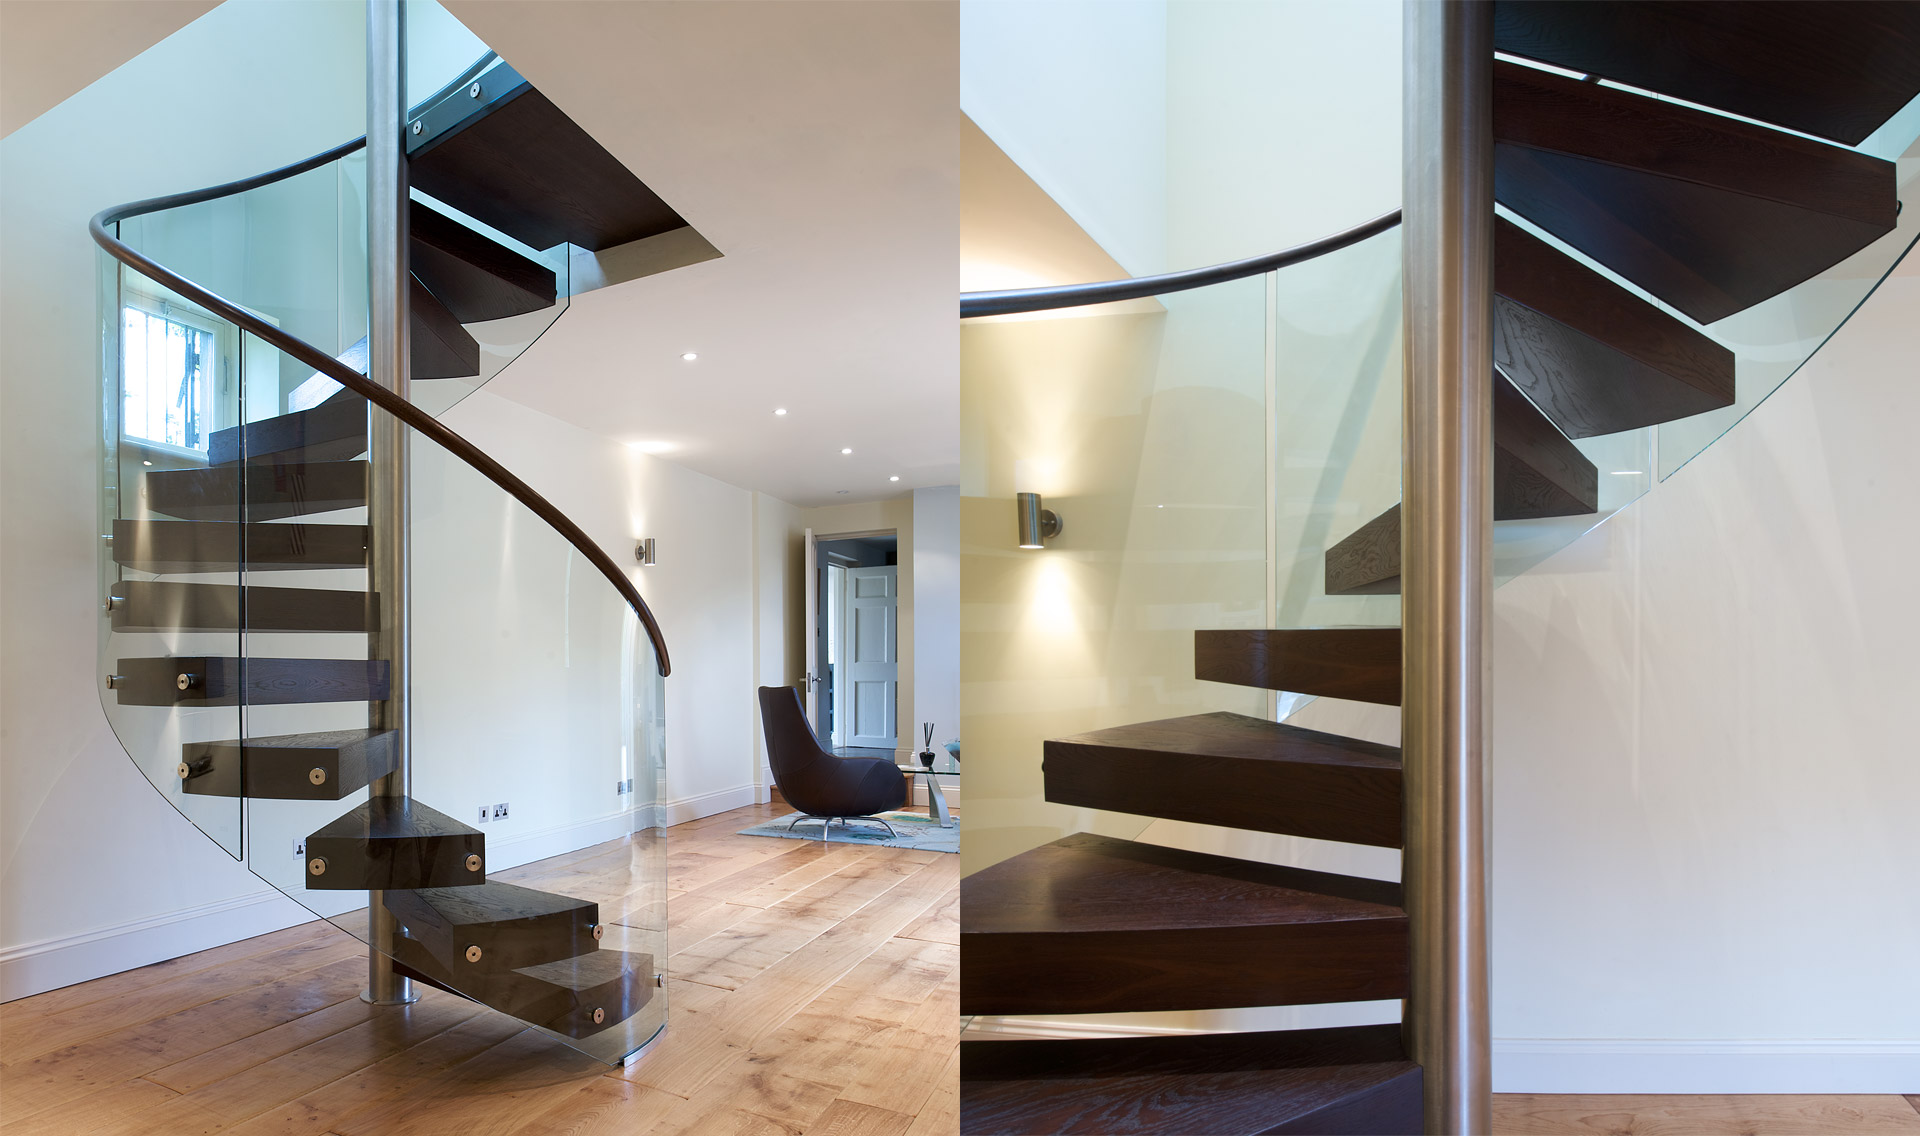 Merveilleux Stairs   Floating Oak Tread   TinTab   Contemporary, Bespoke, Design U0026  Manufacturing In Newhaven, East Sussex